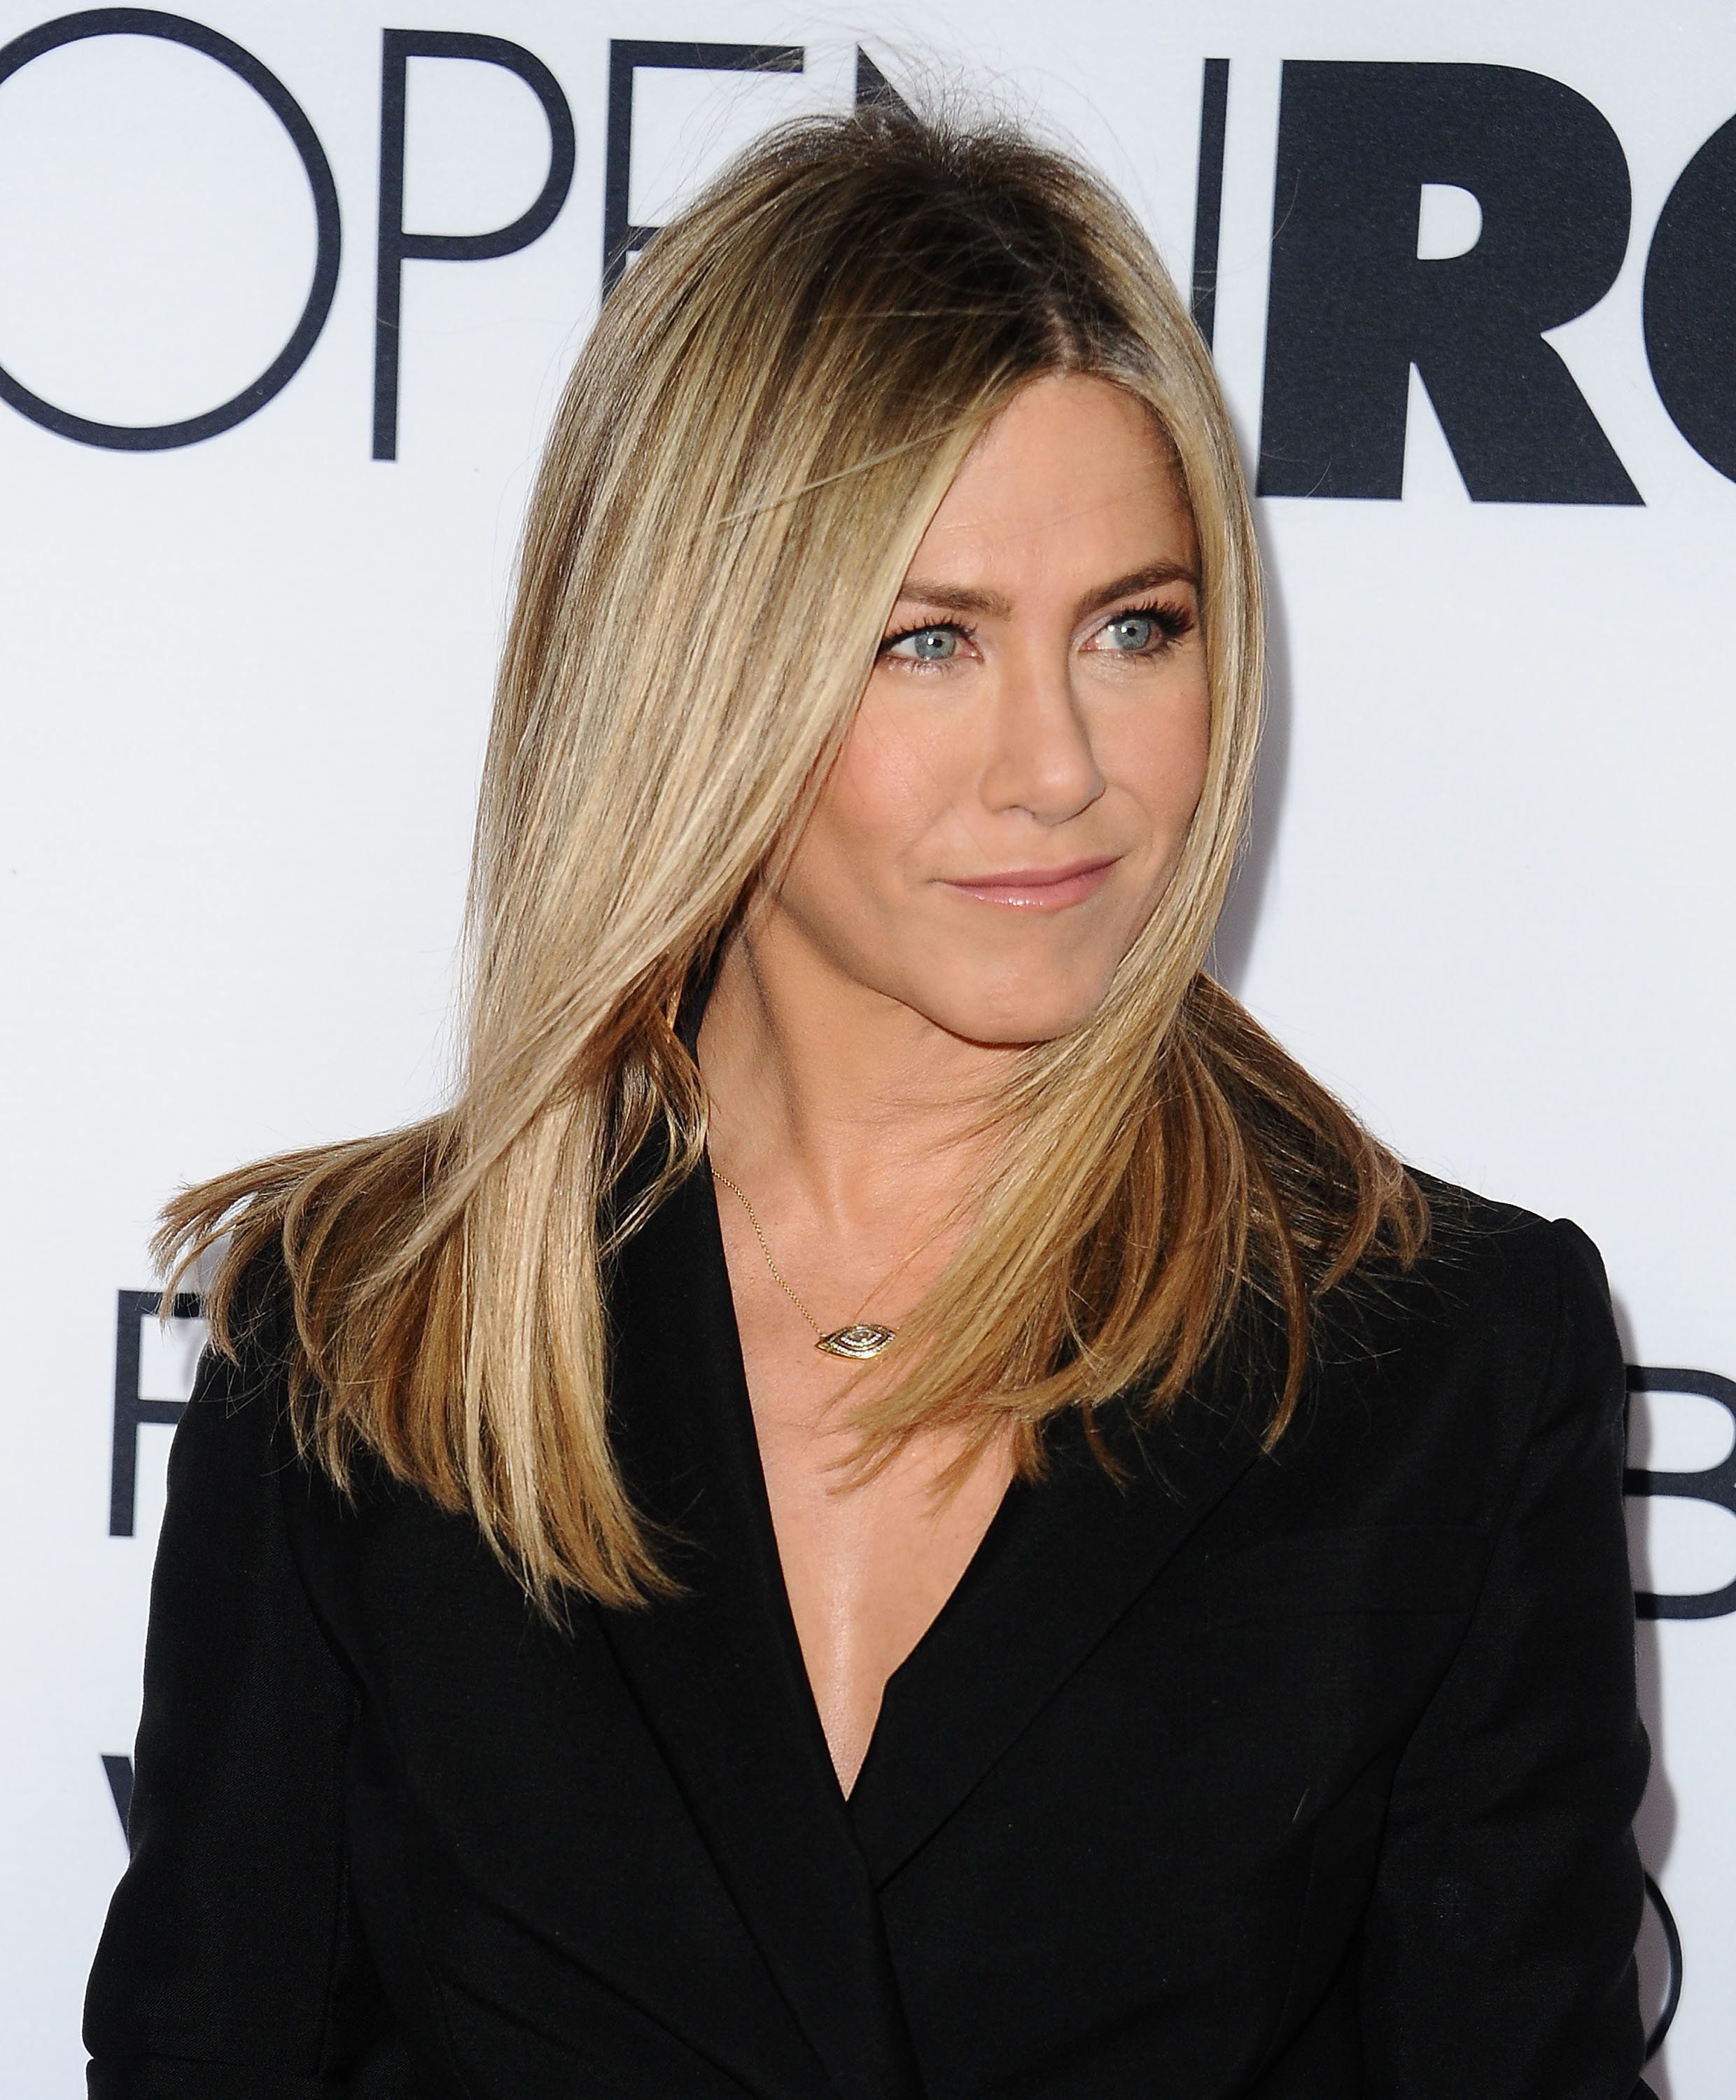 The stars are supporting Jennifer Aniston's open letter to the tabloids